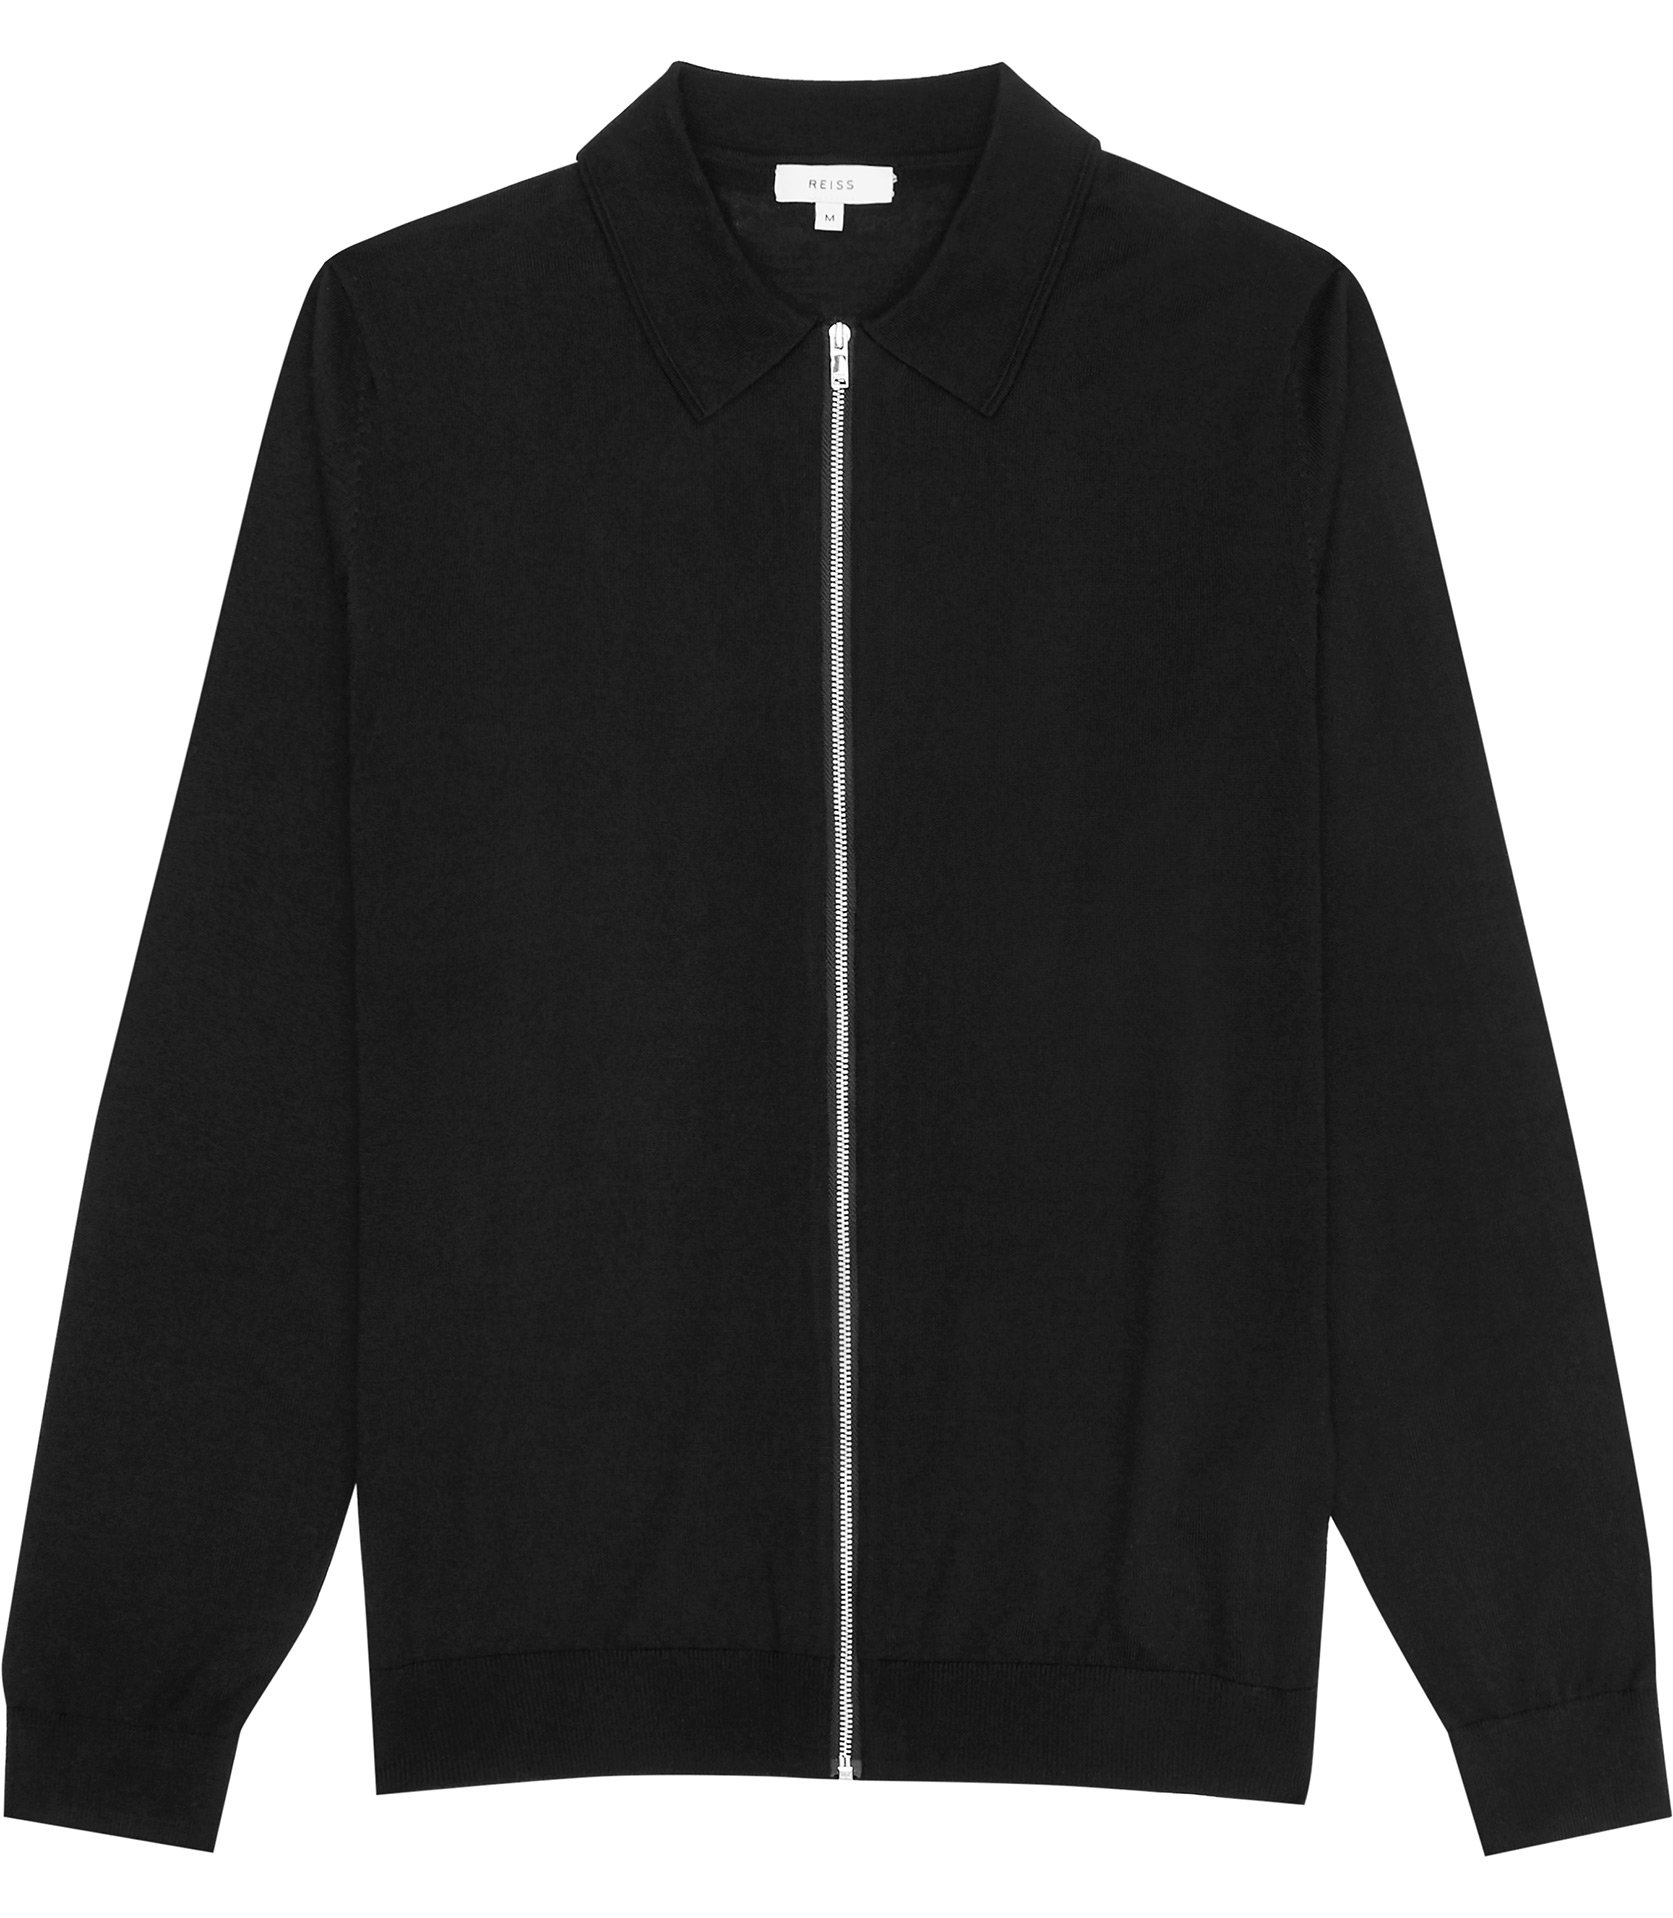 Reiss Black Zip-Through Cardigan